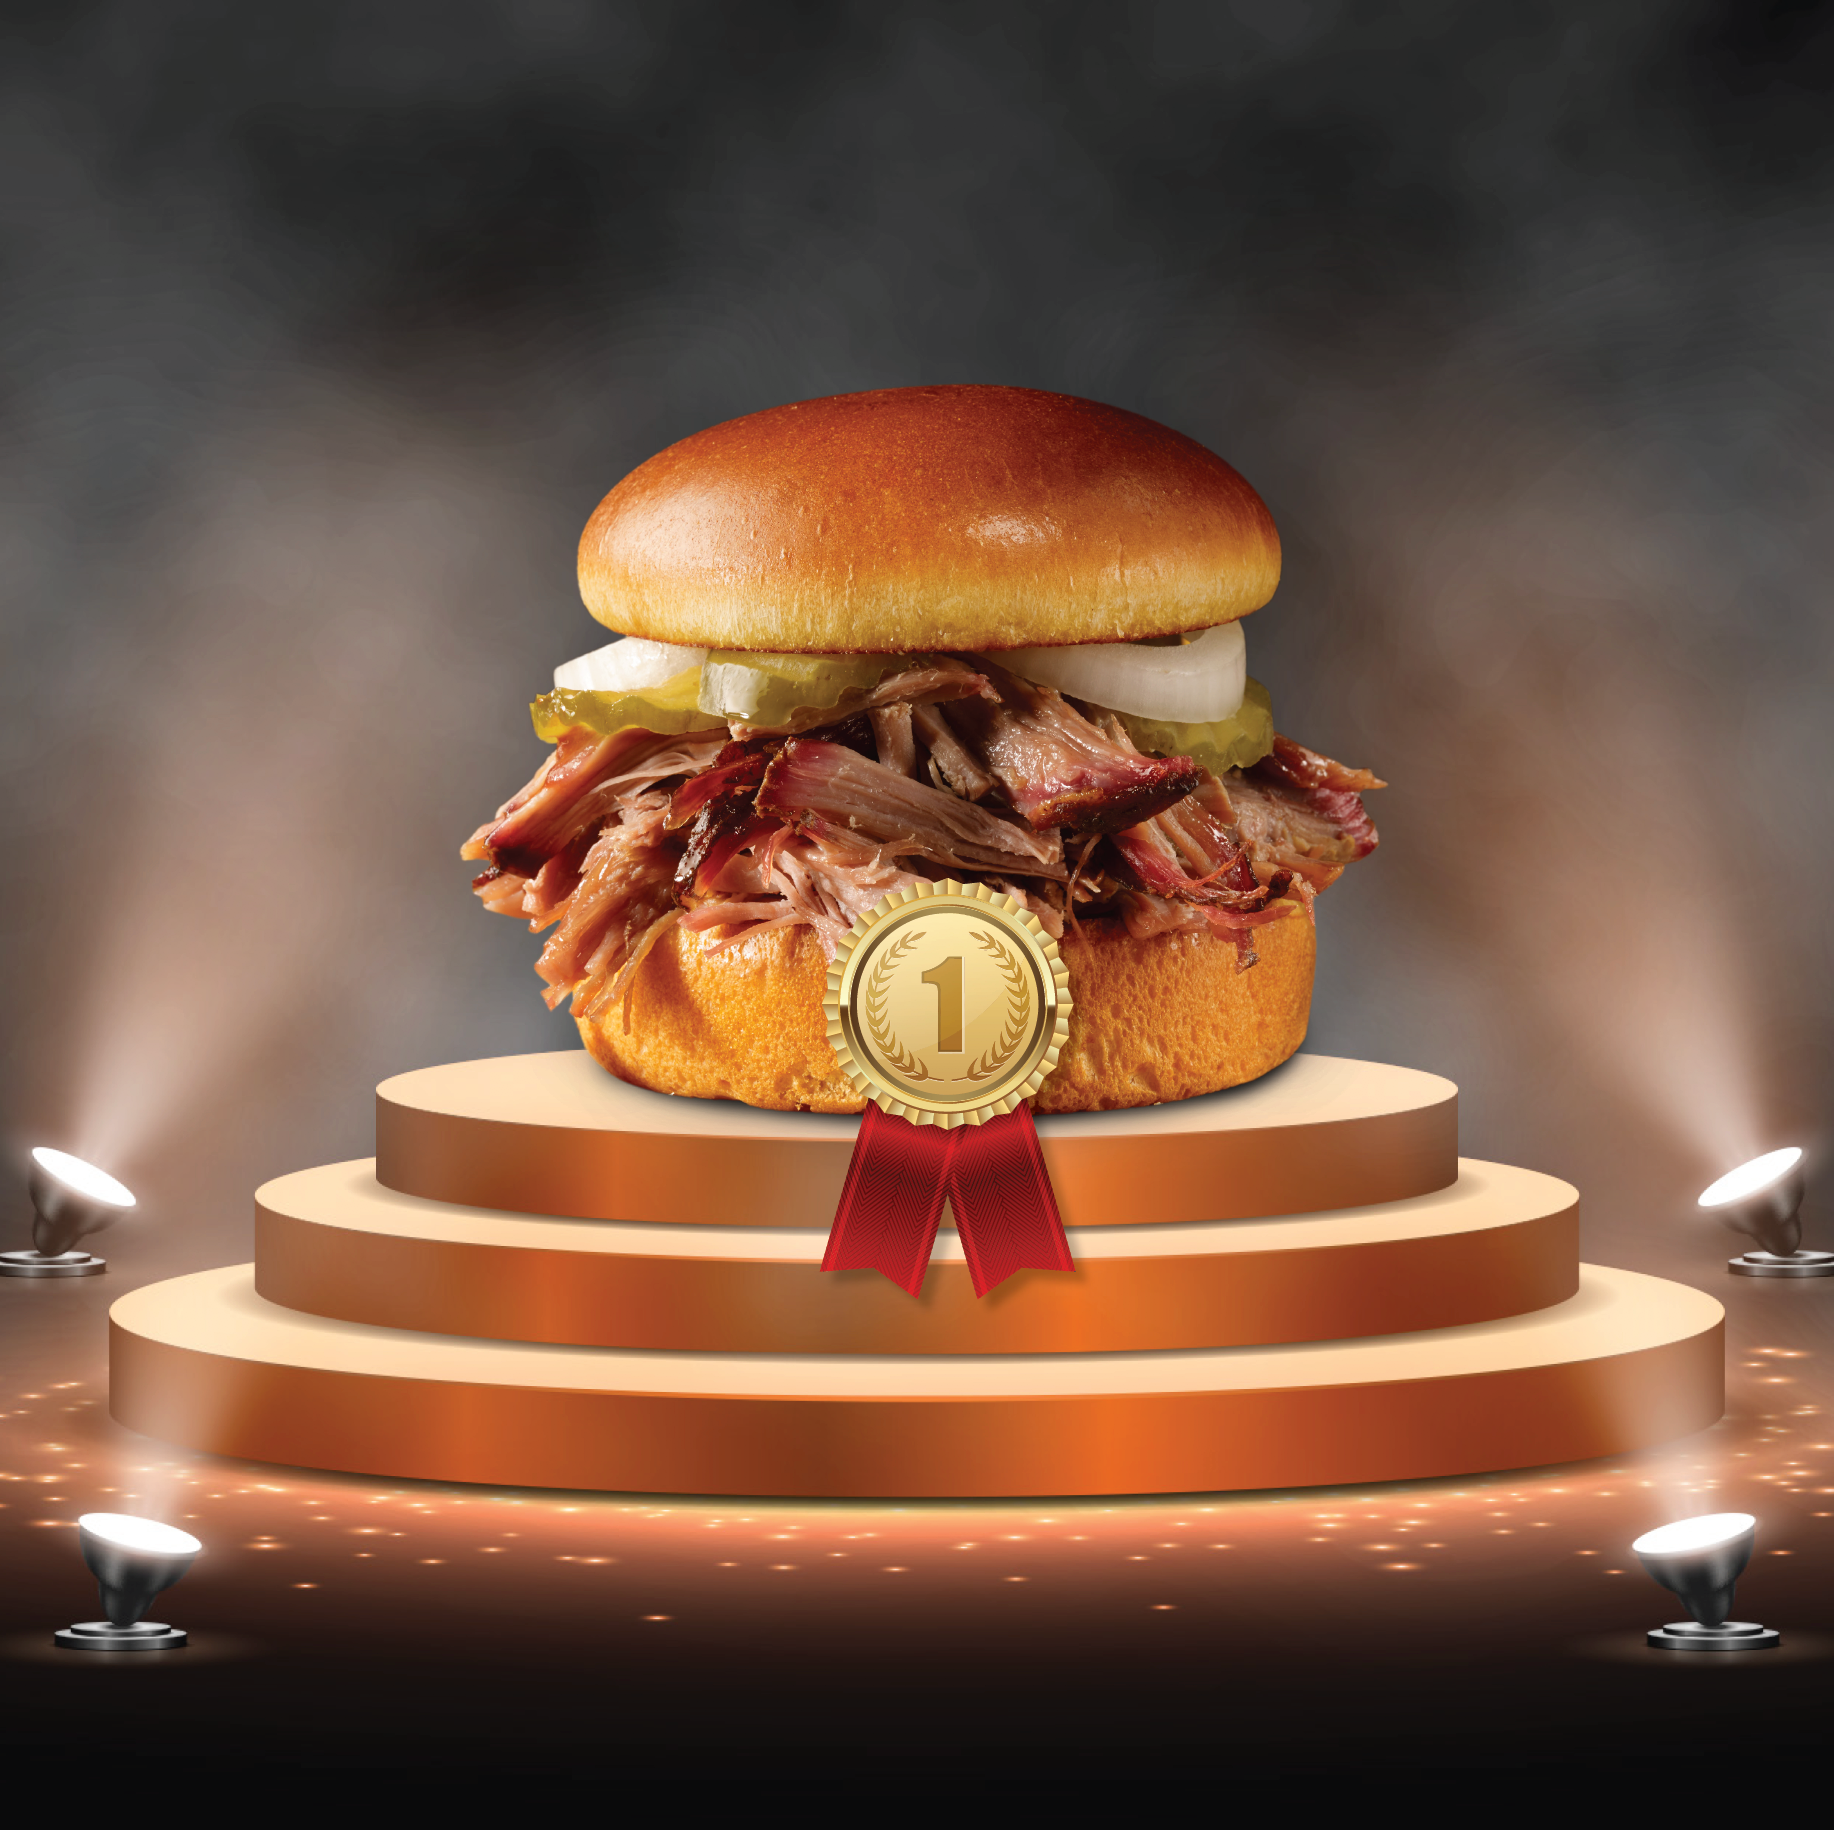 Dickey's Barbecue Pit sees Explosive Growth through their Summer of Gold Loyalty Program